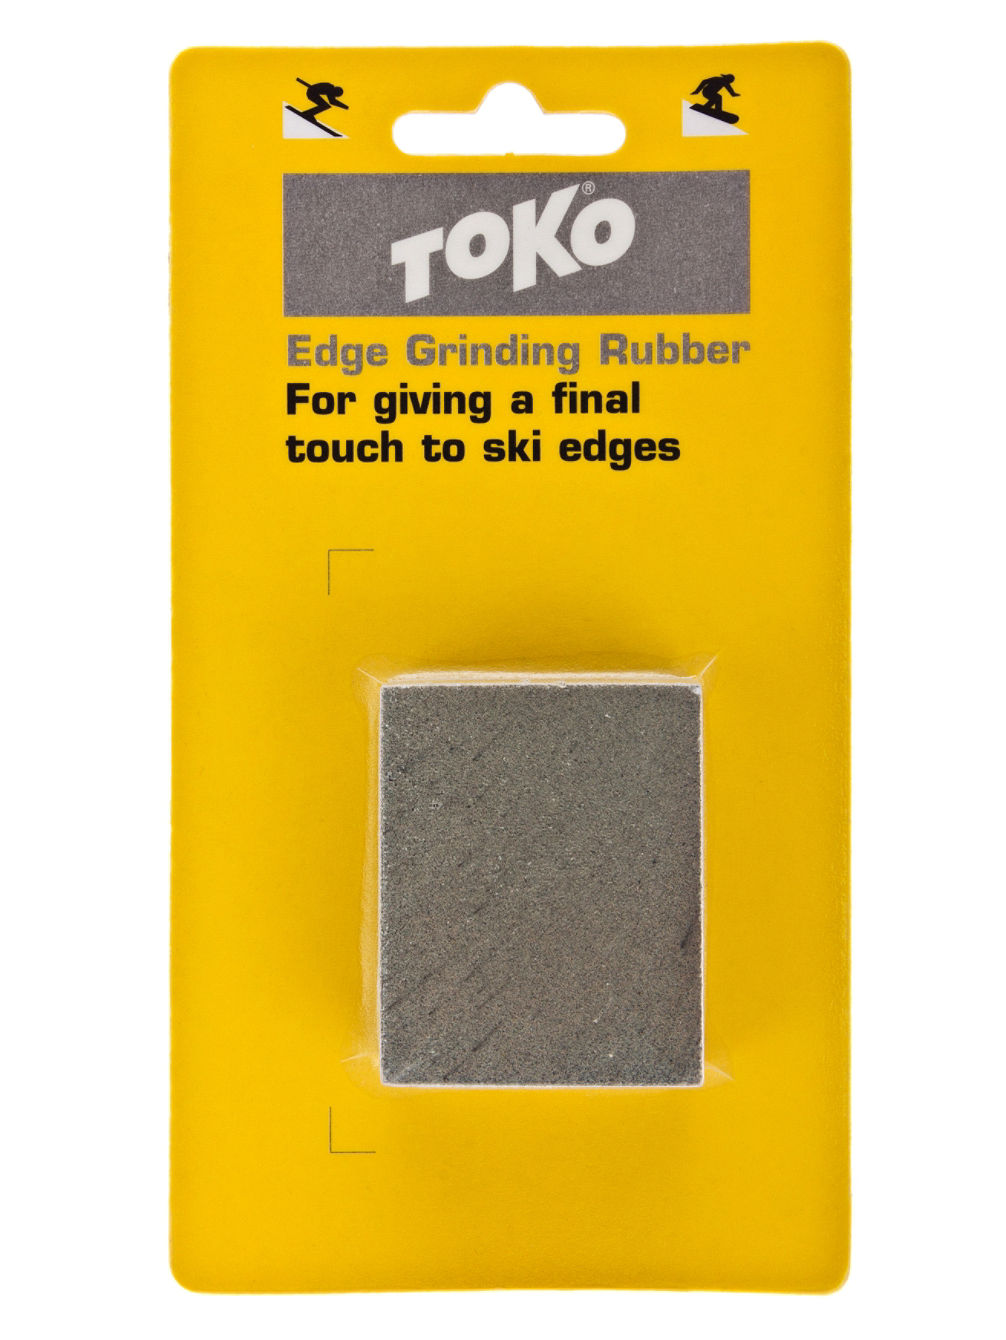 Edge Grinding Rubber